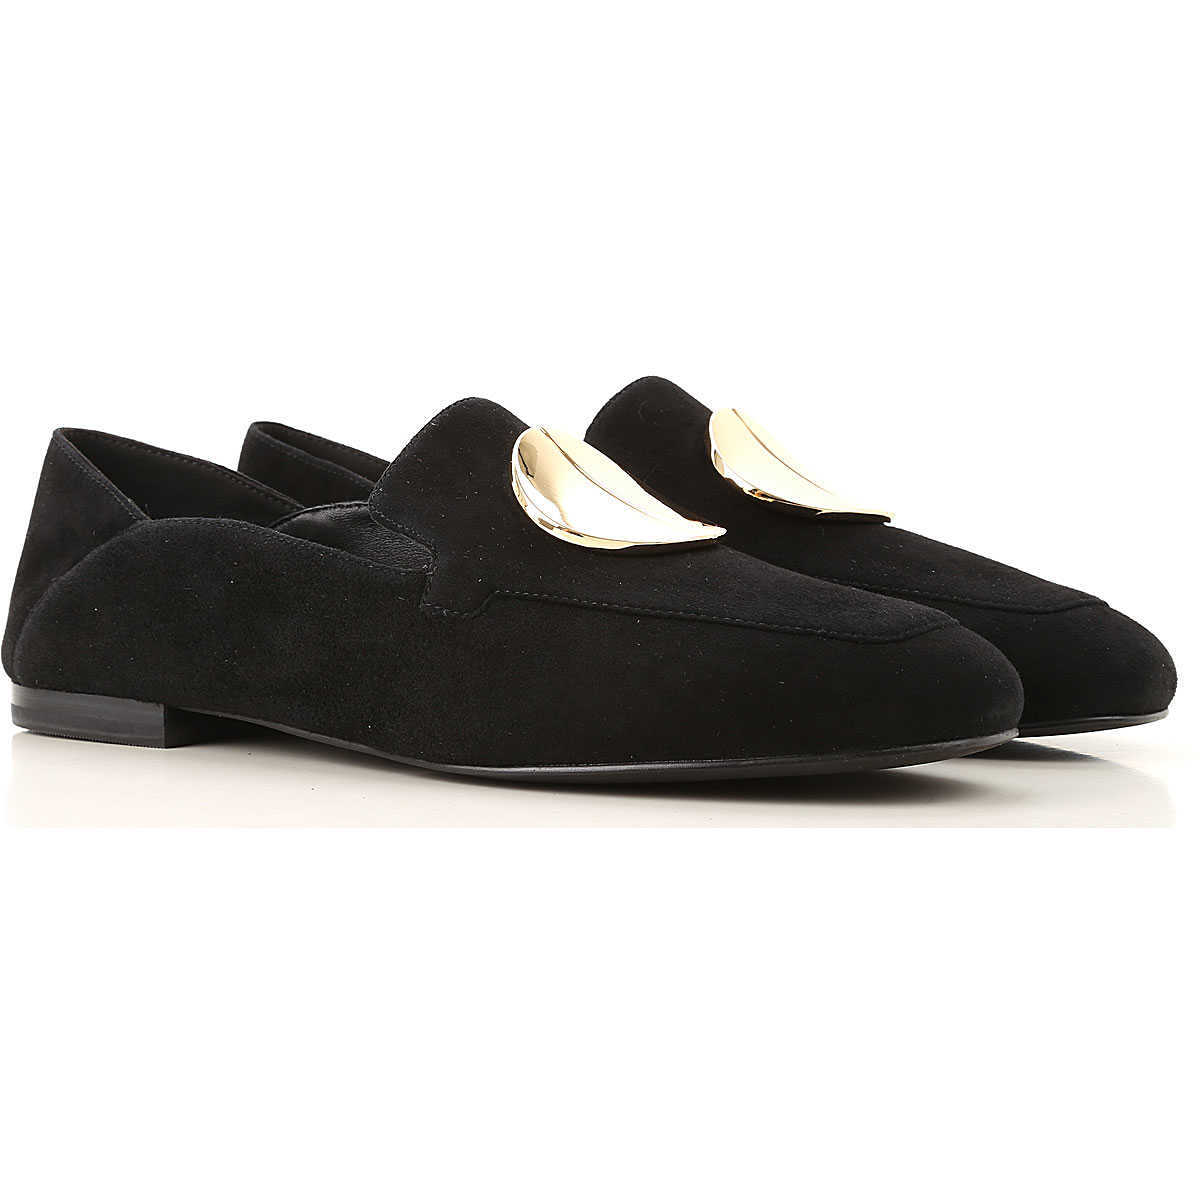 What For Loafers for Women Black UK - GOOFASH